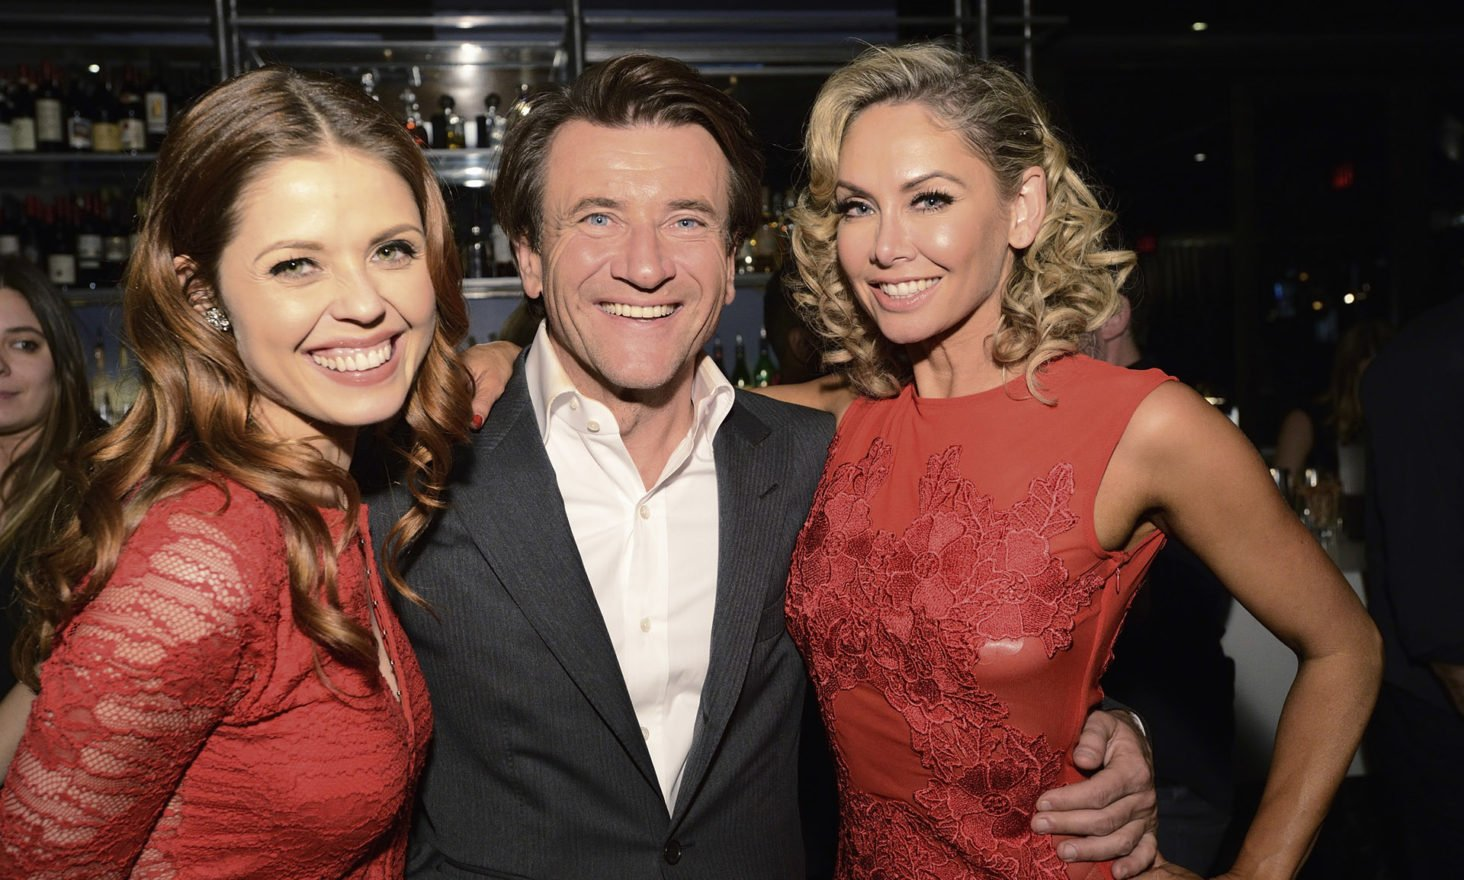 Robert Herjavec on the future of cryptocurrency